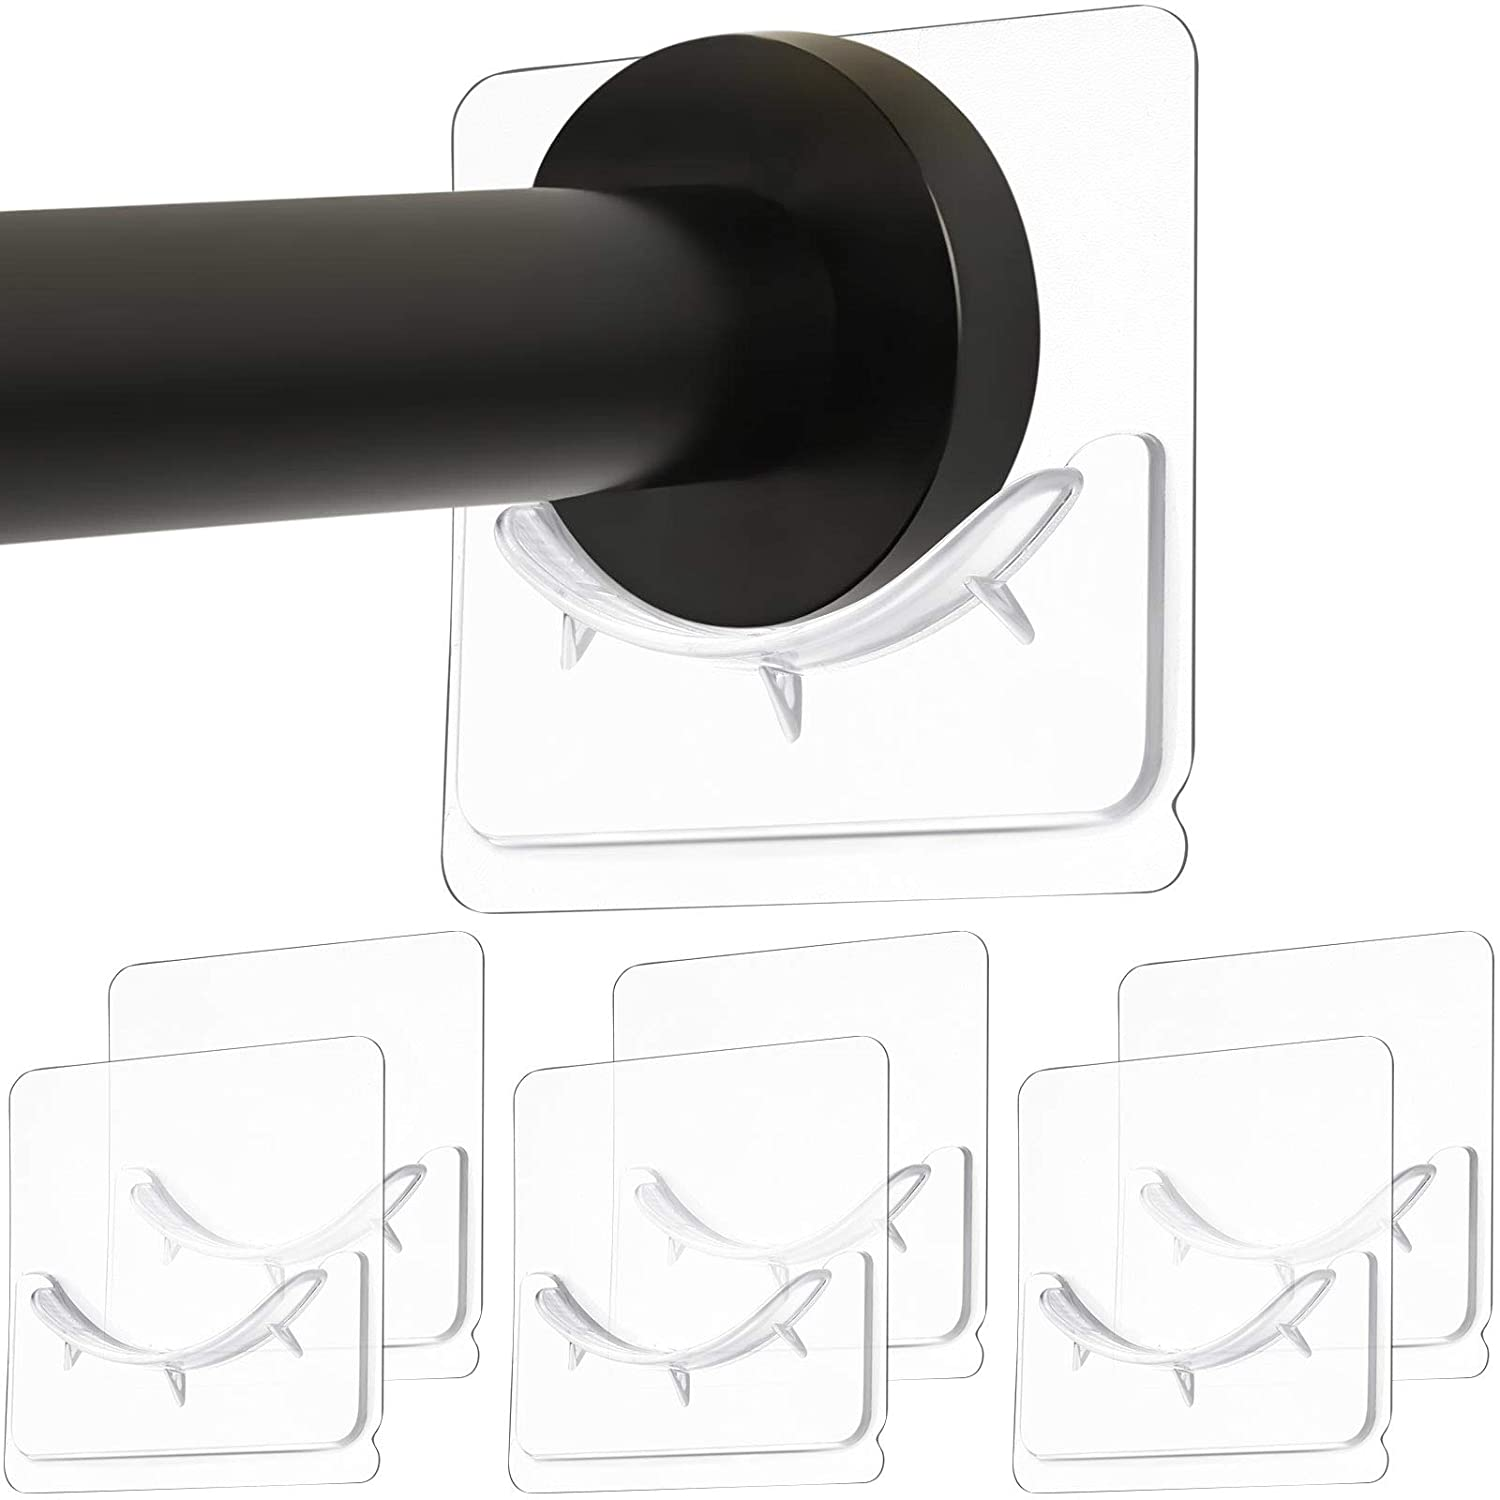 Adhesive Rod Mount Retainer Not Include Shower Curtain Rod Adhesive Wall Mounted Shower Rods Holder Drill-Free Install Transparent 6 Piece Adhesive Shower Curtain Rod Holder No Drilling